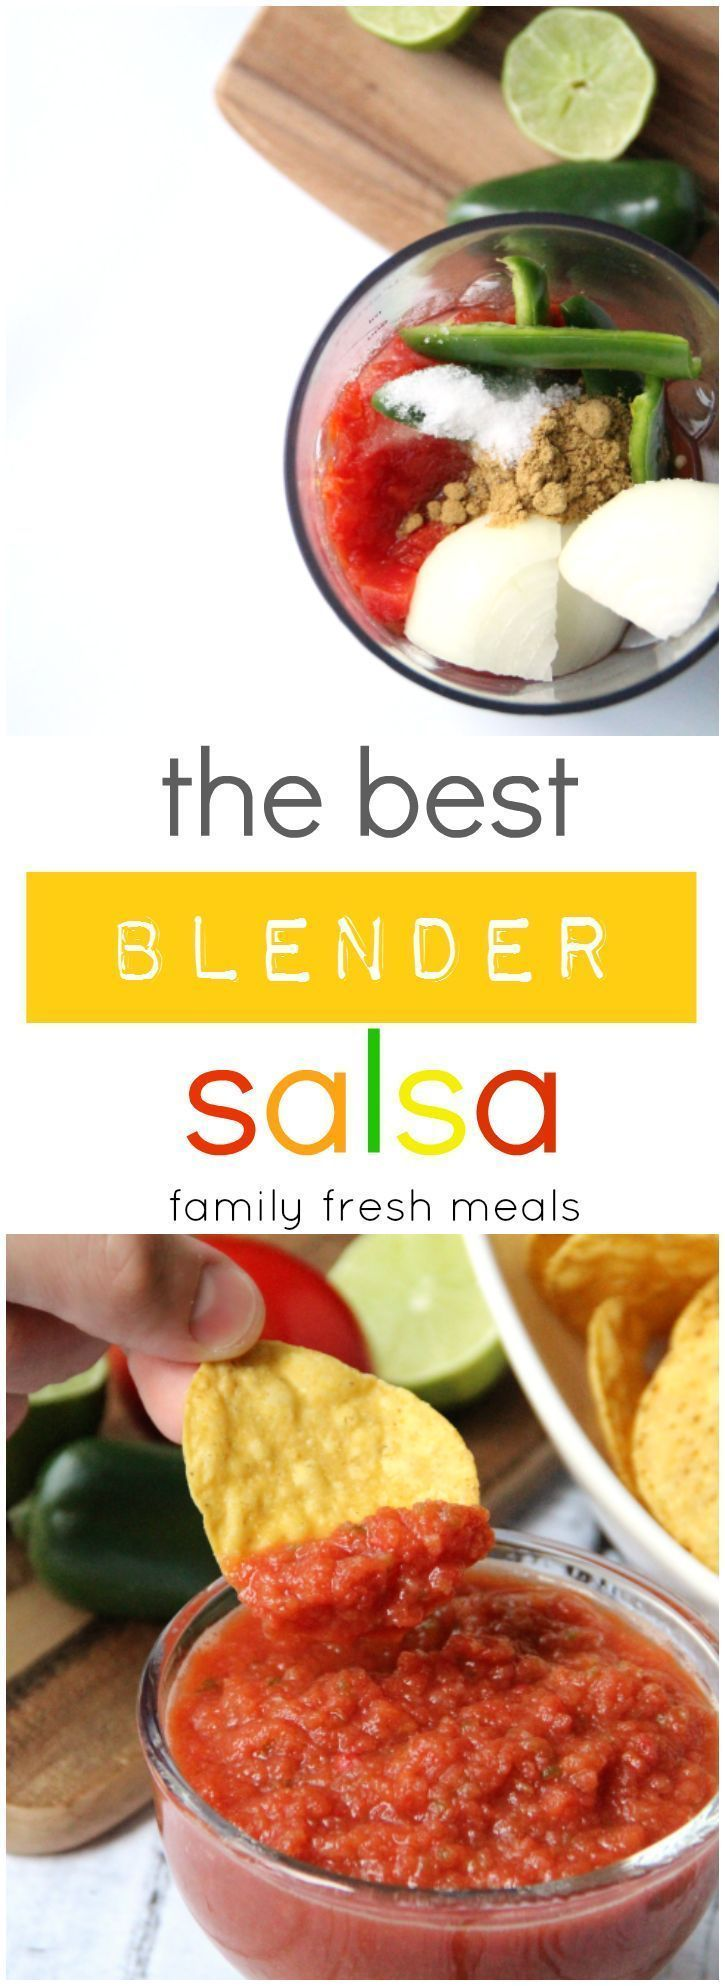 No joke! It's THE BEST! Blender Salsa Recipe